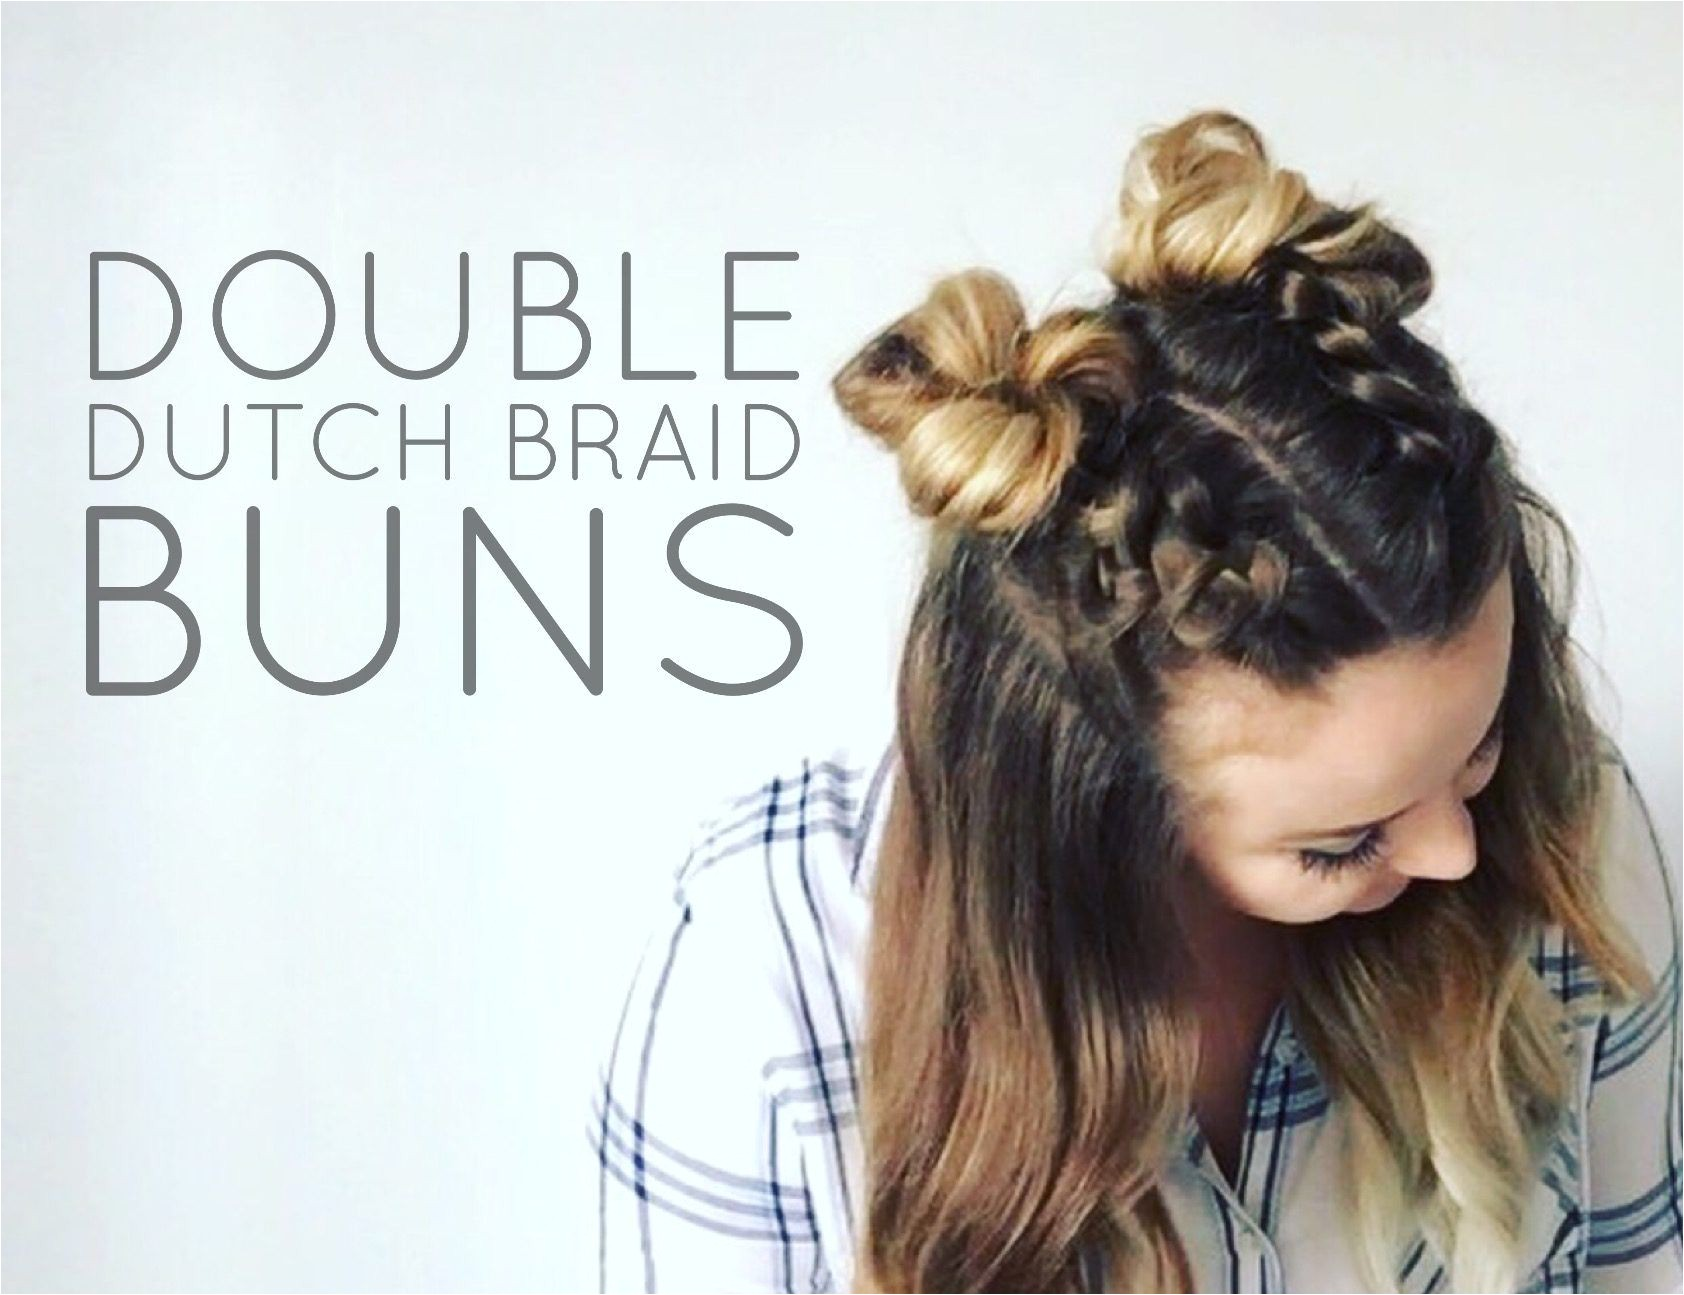 Double Dutch Braid Buns Half up Hairstyle Life on Waller